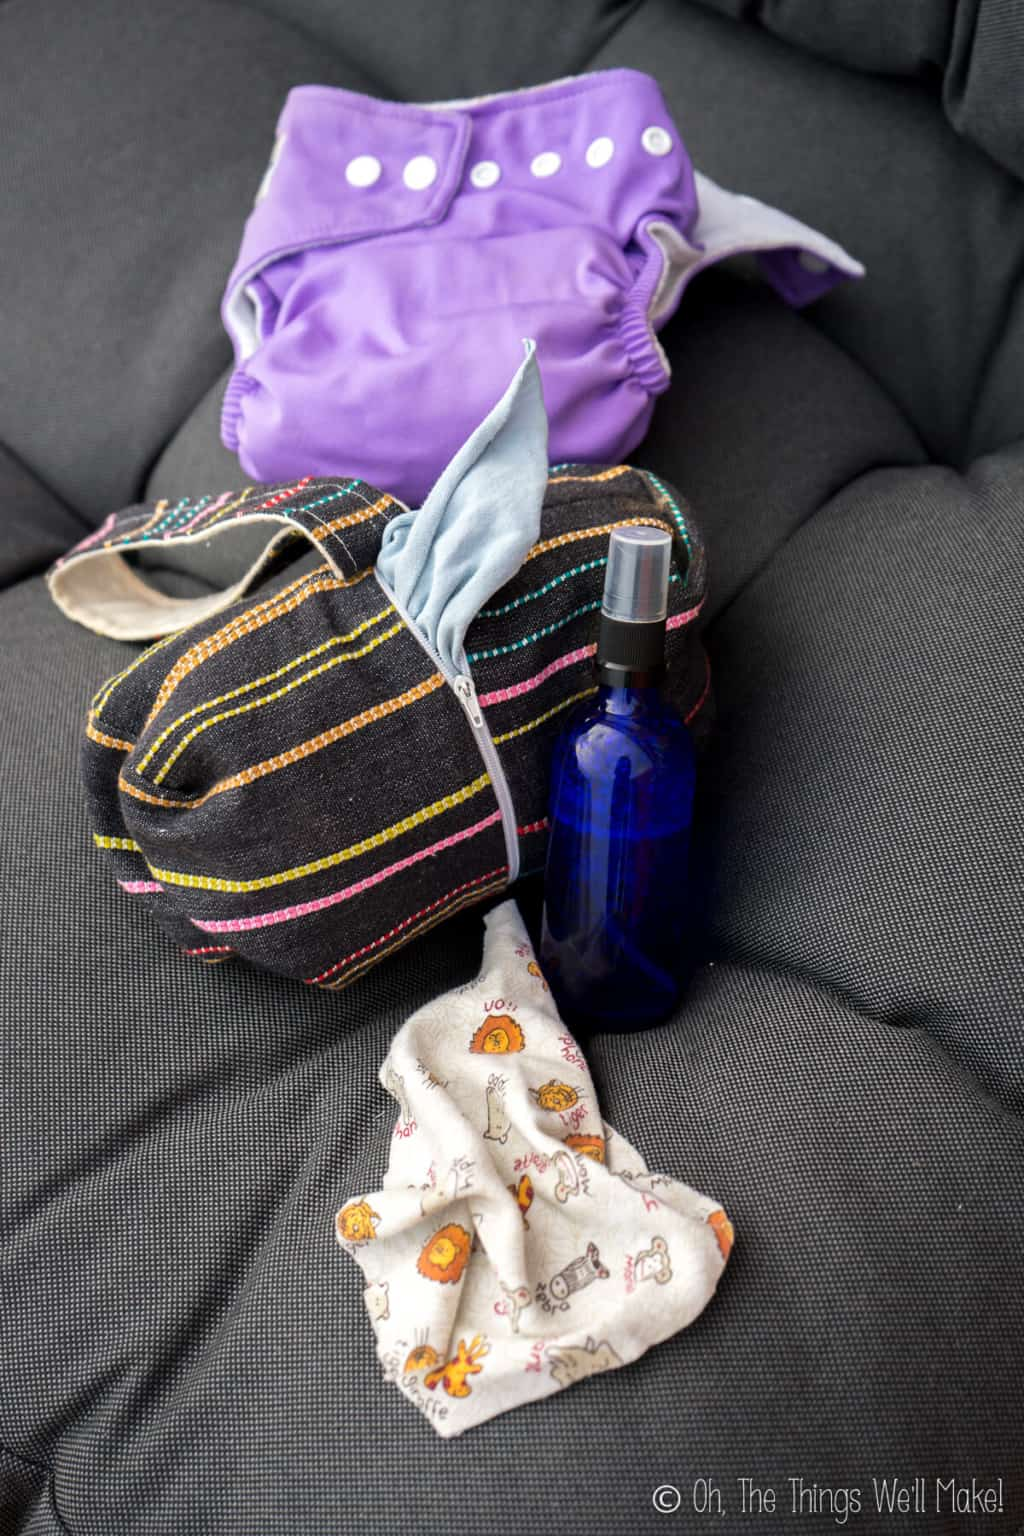 A small blue glass bottle with baby wipe solution, a black with stripes design cloth wipes dispenser, and a purple cloth diaper.